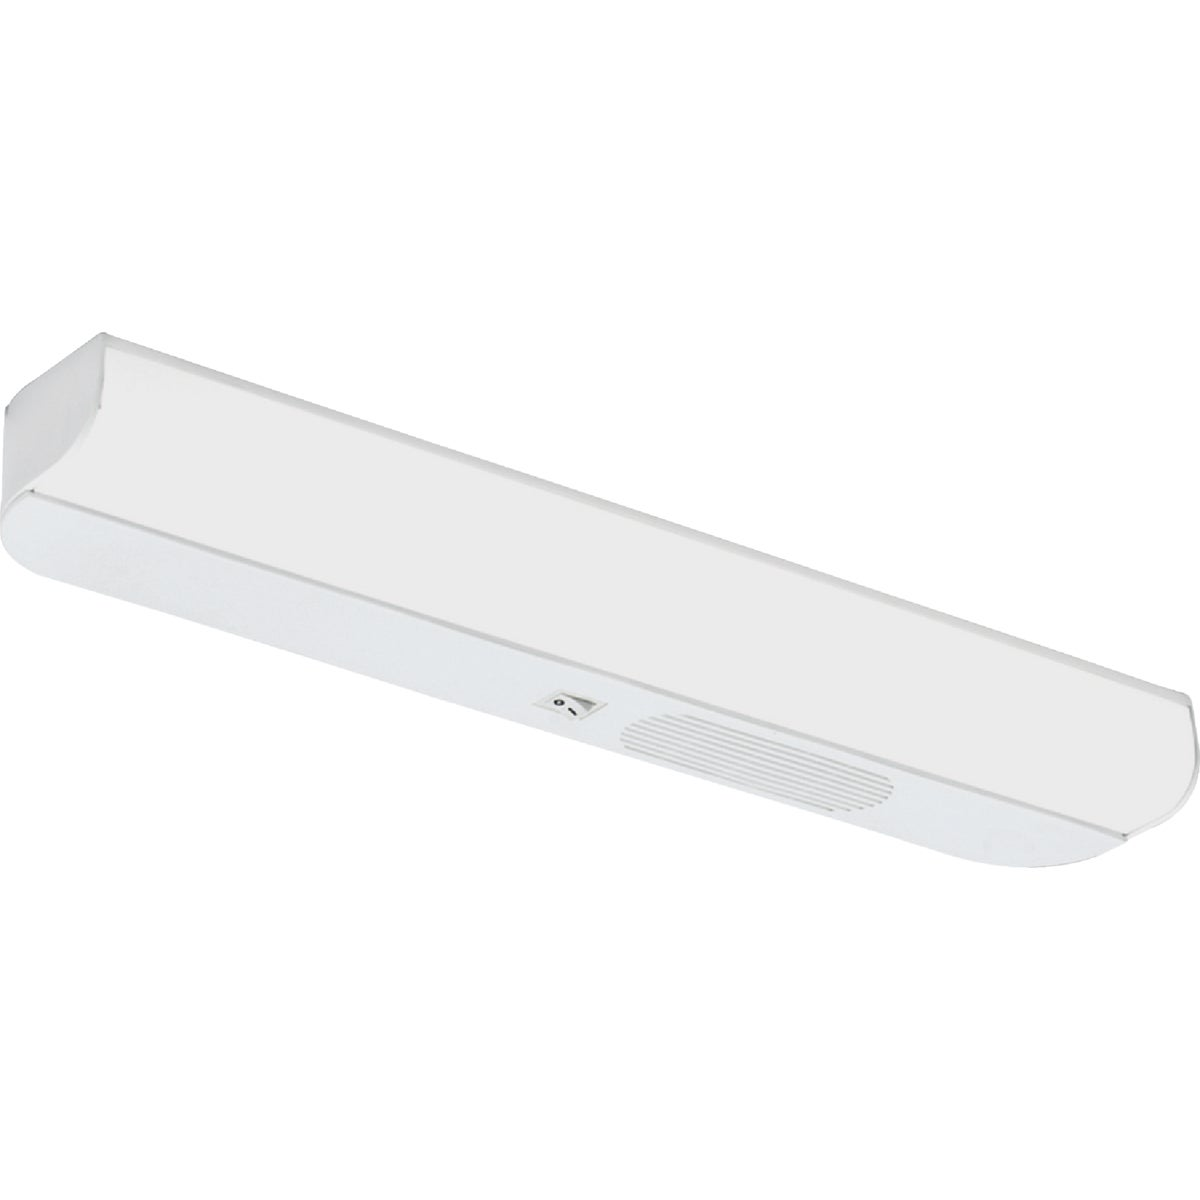 "18"" UNDERCABINET LIGHT - G9718P-T8-WH-I by Good Earth Lighting"